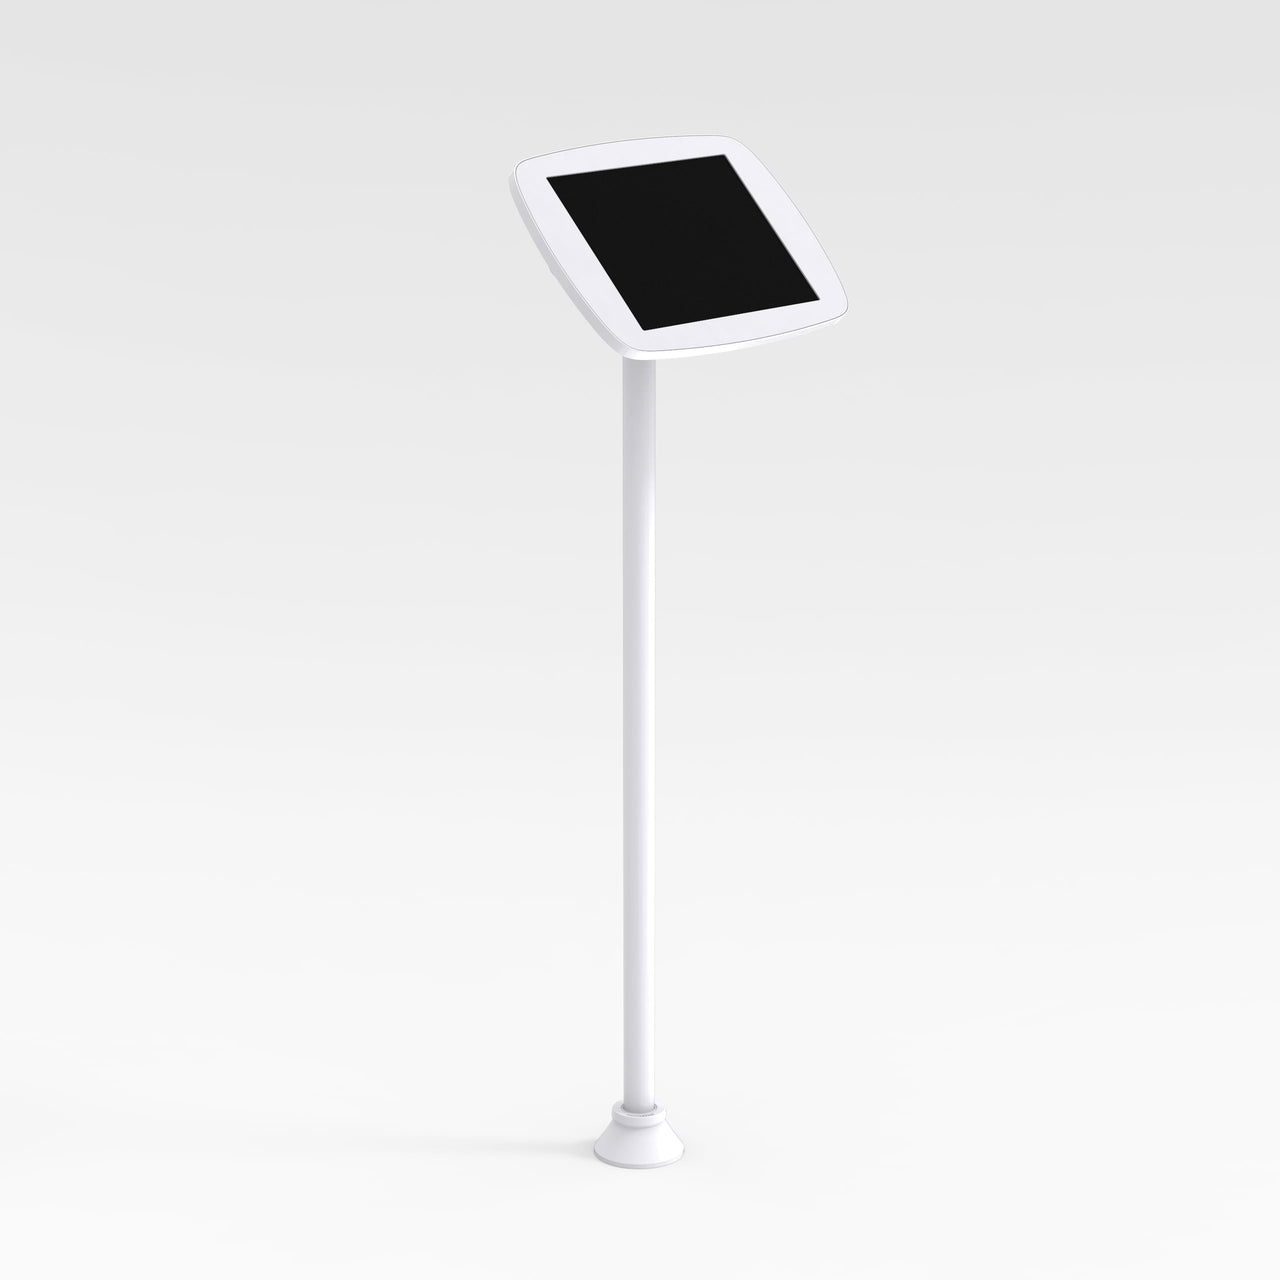 Bouncepad Floorstanding Slim - A secure tablet & iPad floor stand  in white.